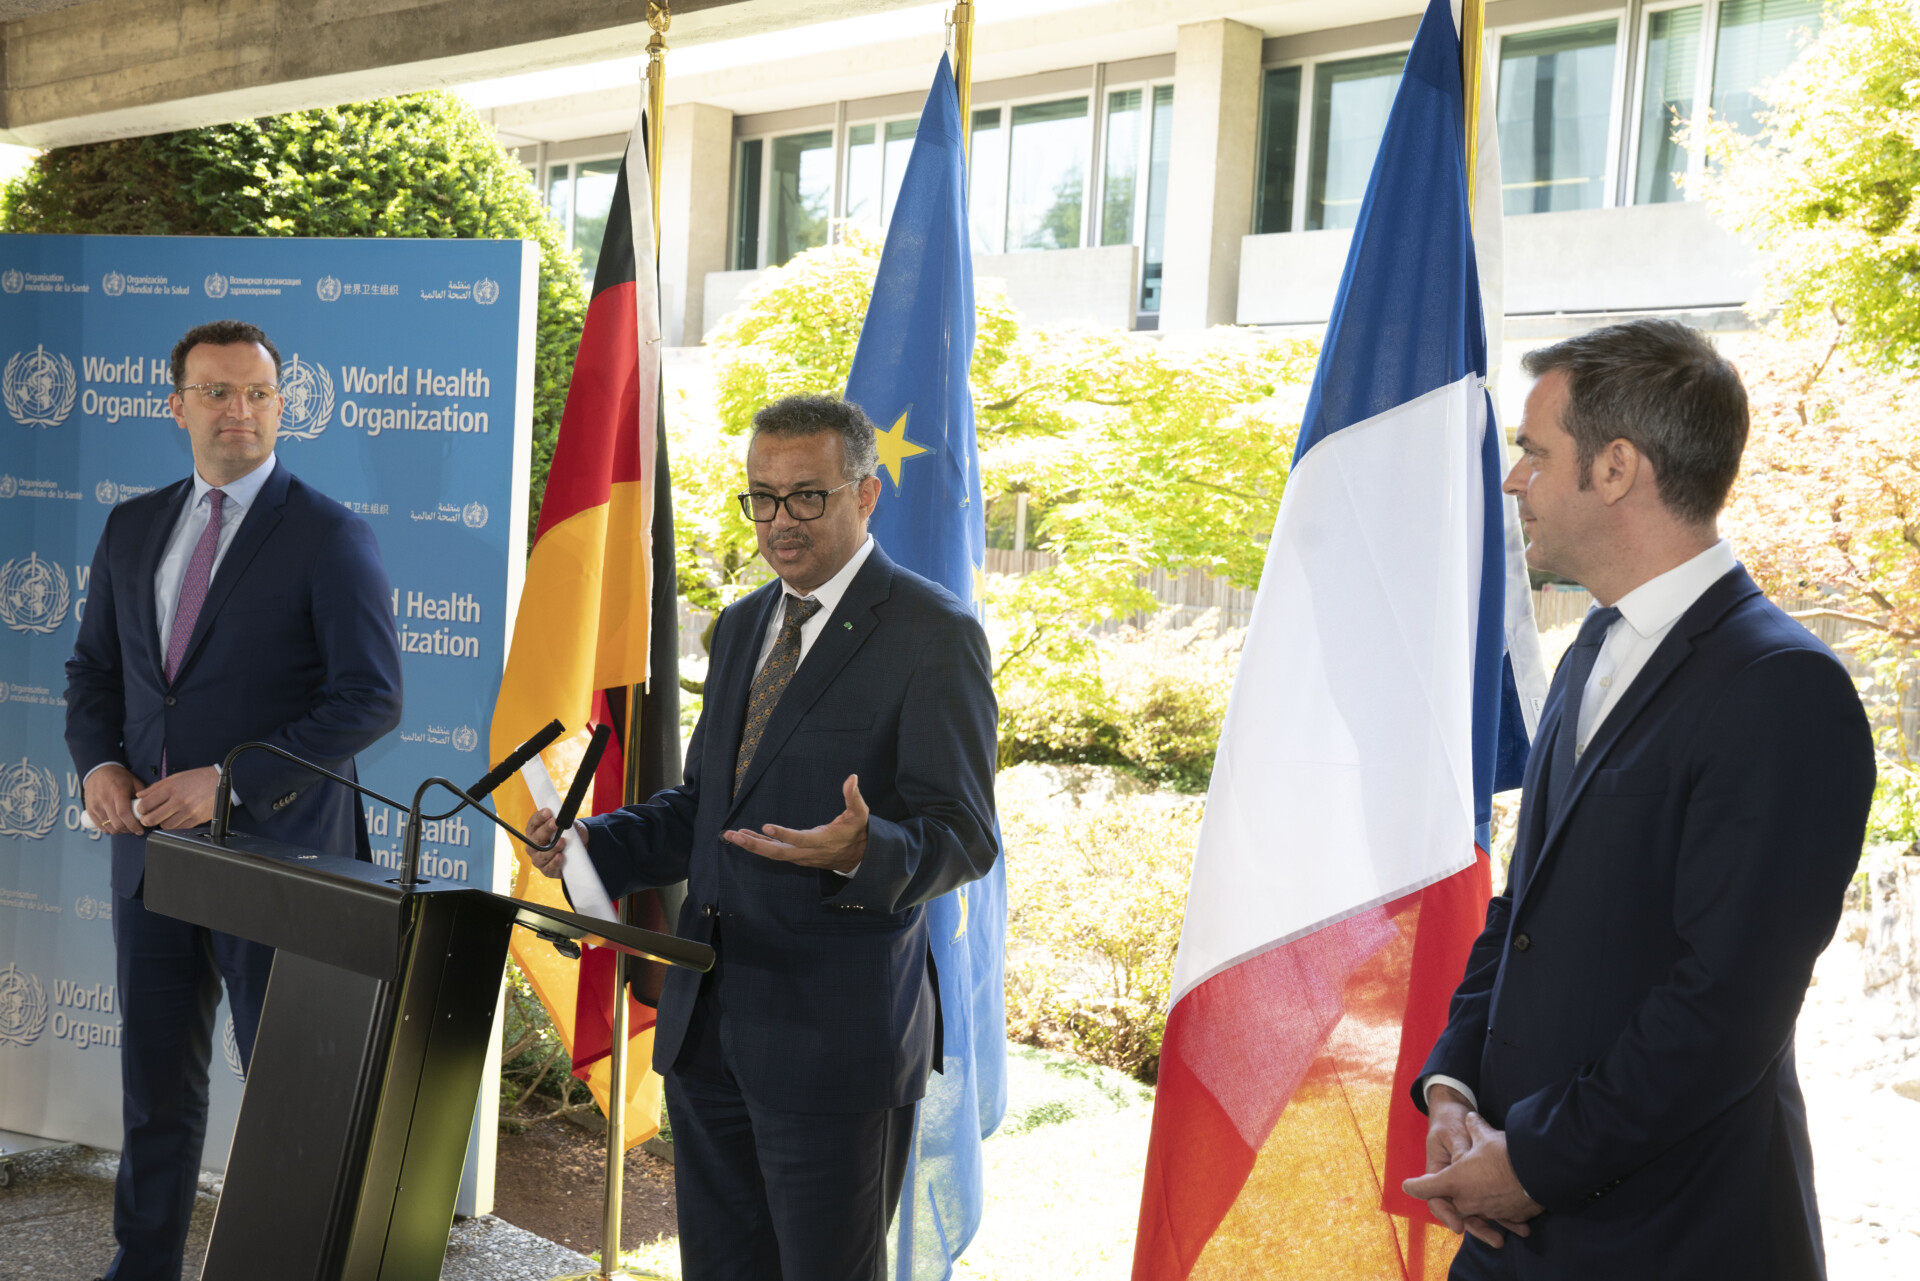 WHO Director-General, Dr Tedros Adhanom Ghebreyesus (middle) with Jens Spahn (left), Federal Minister of Health, Germany and Olivier Veran (right), Minister for Solidarity and Health, France, during a meeting for ministers of health in June 2020